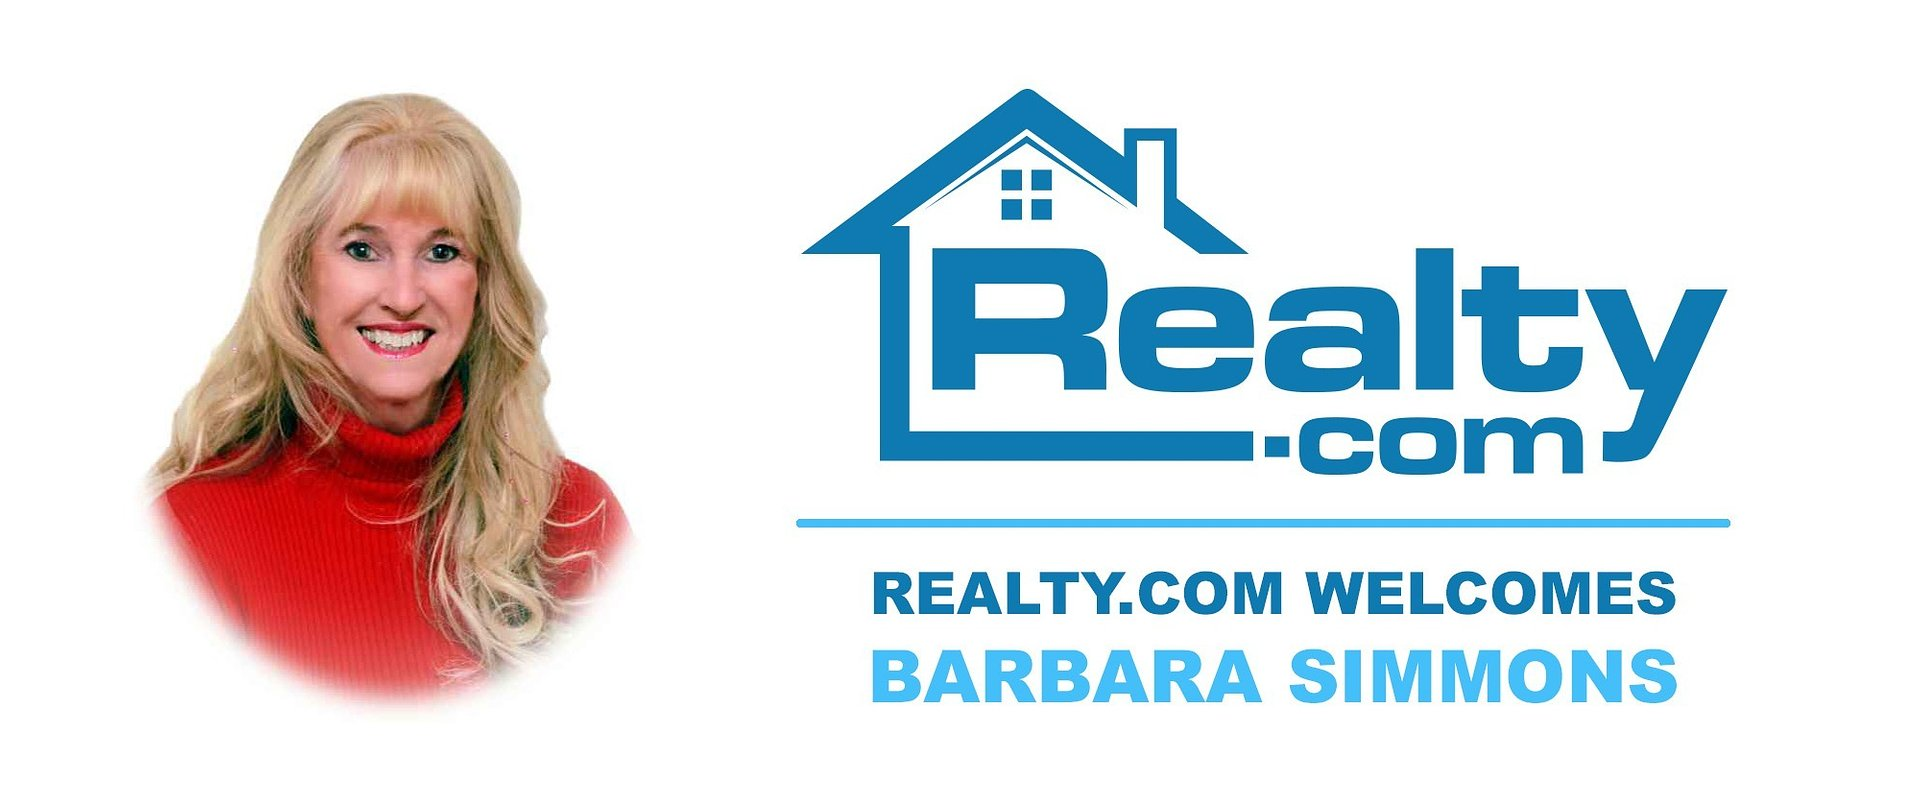 Realty.com announces Barbara Simmons as exclusive broker for California cities